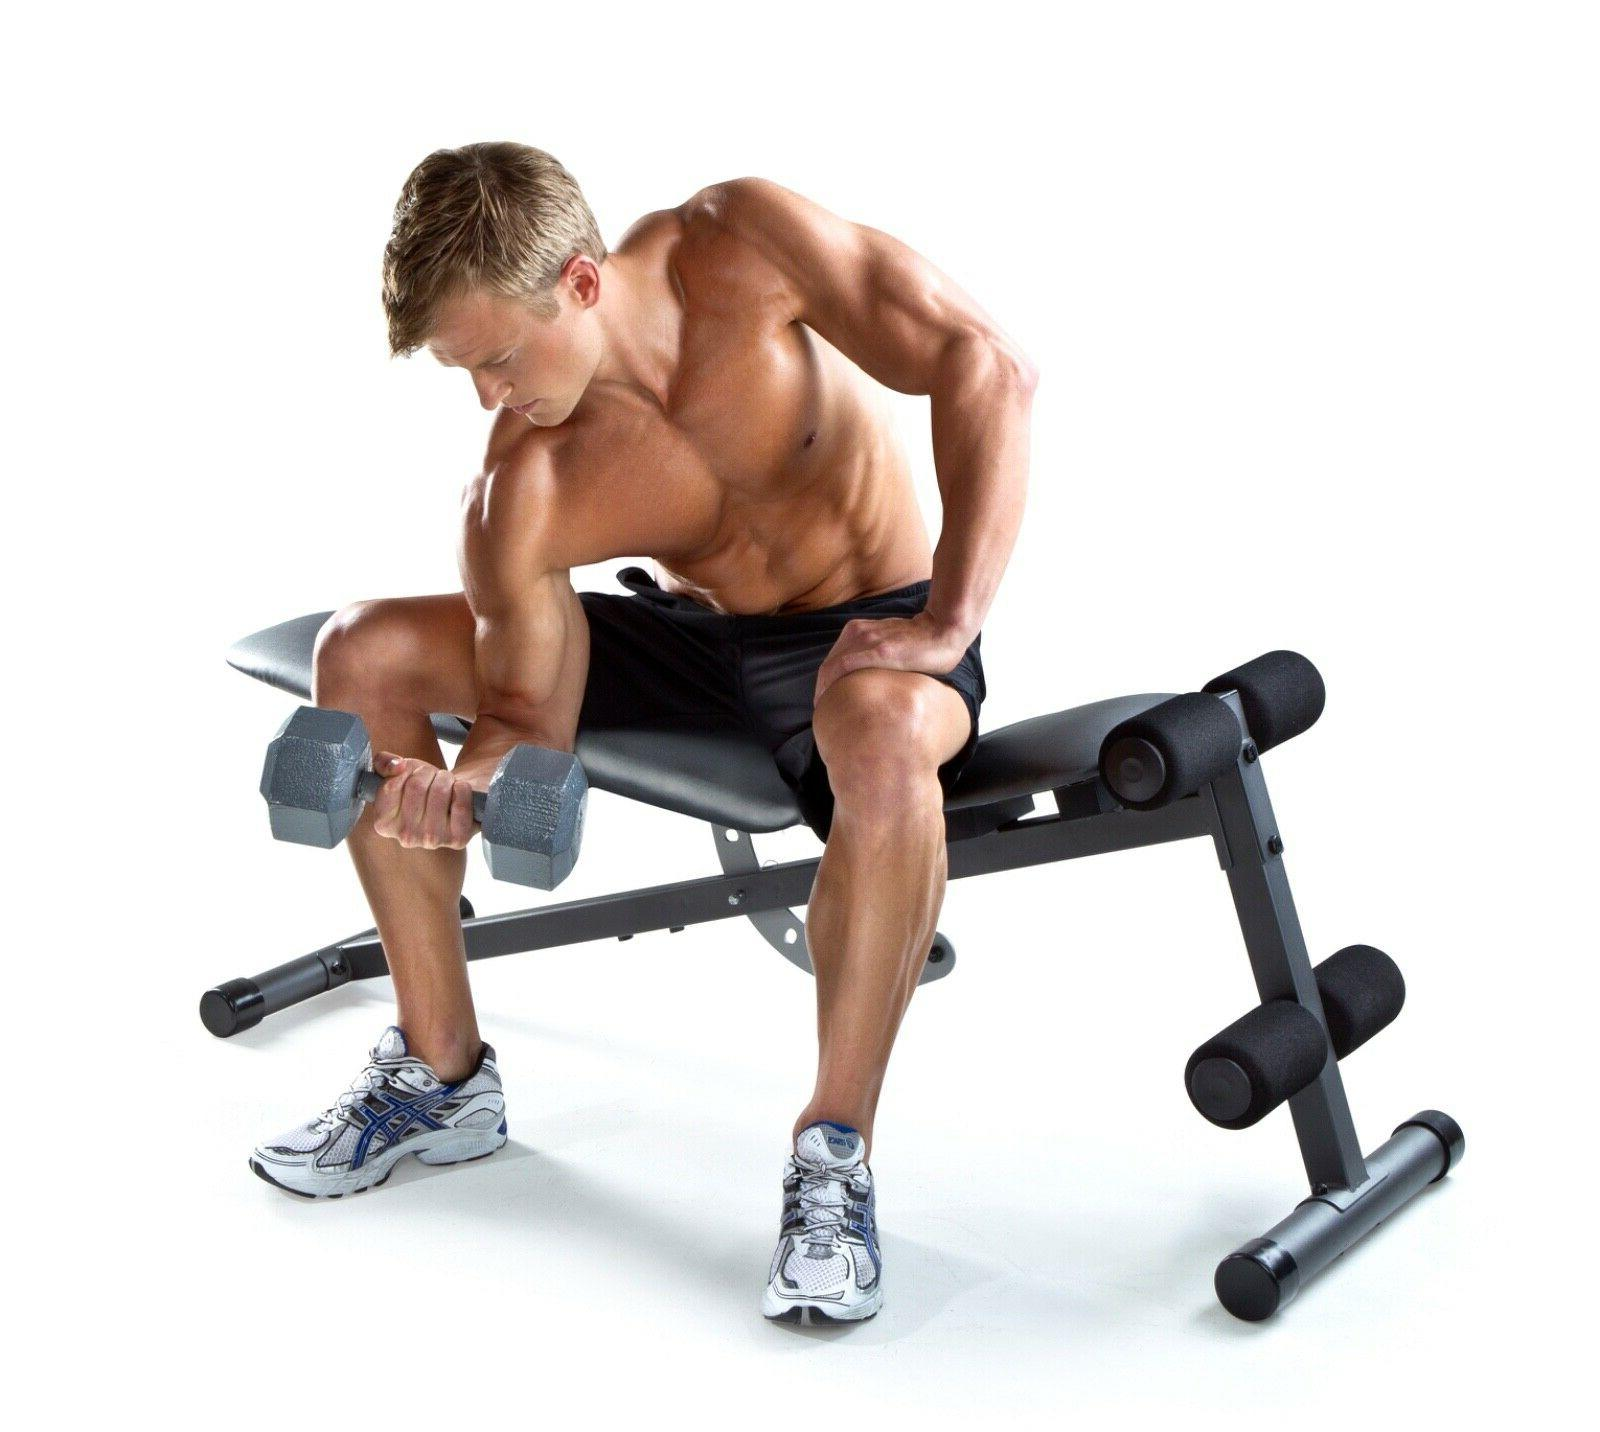 ADJUSTABLE BENCH Incline Decline Exercise Strength Workout Training